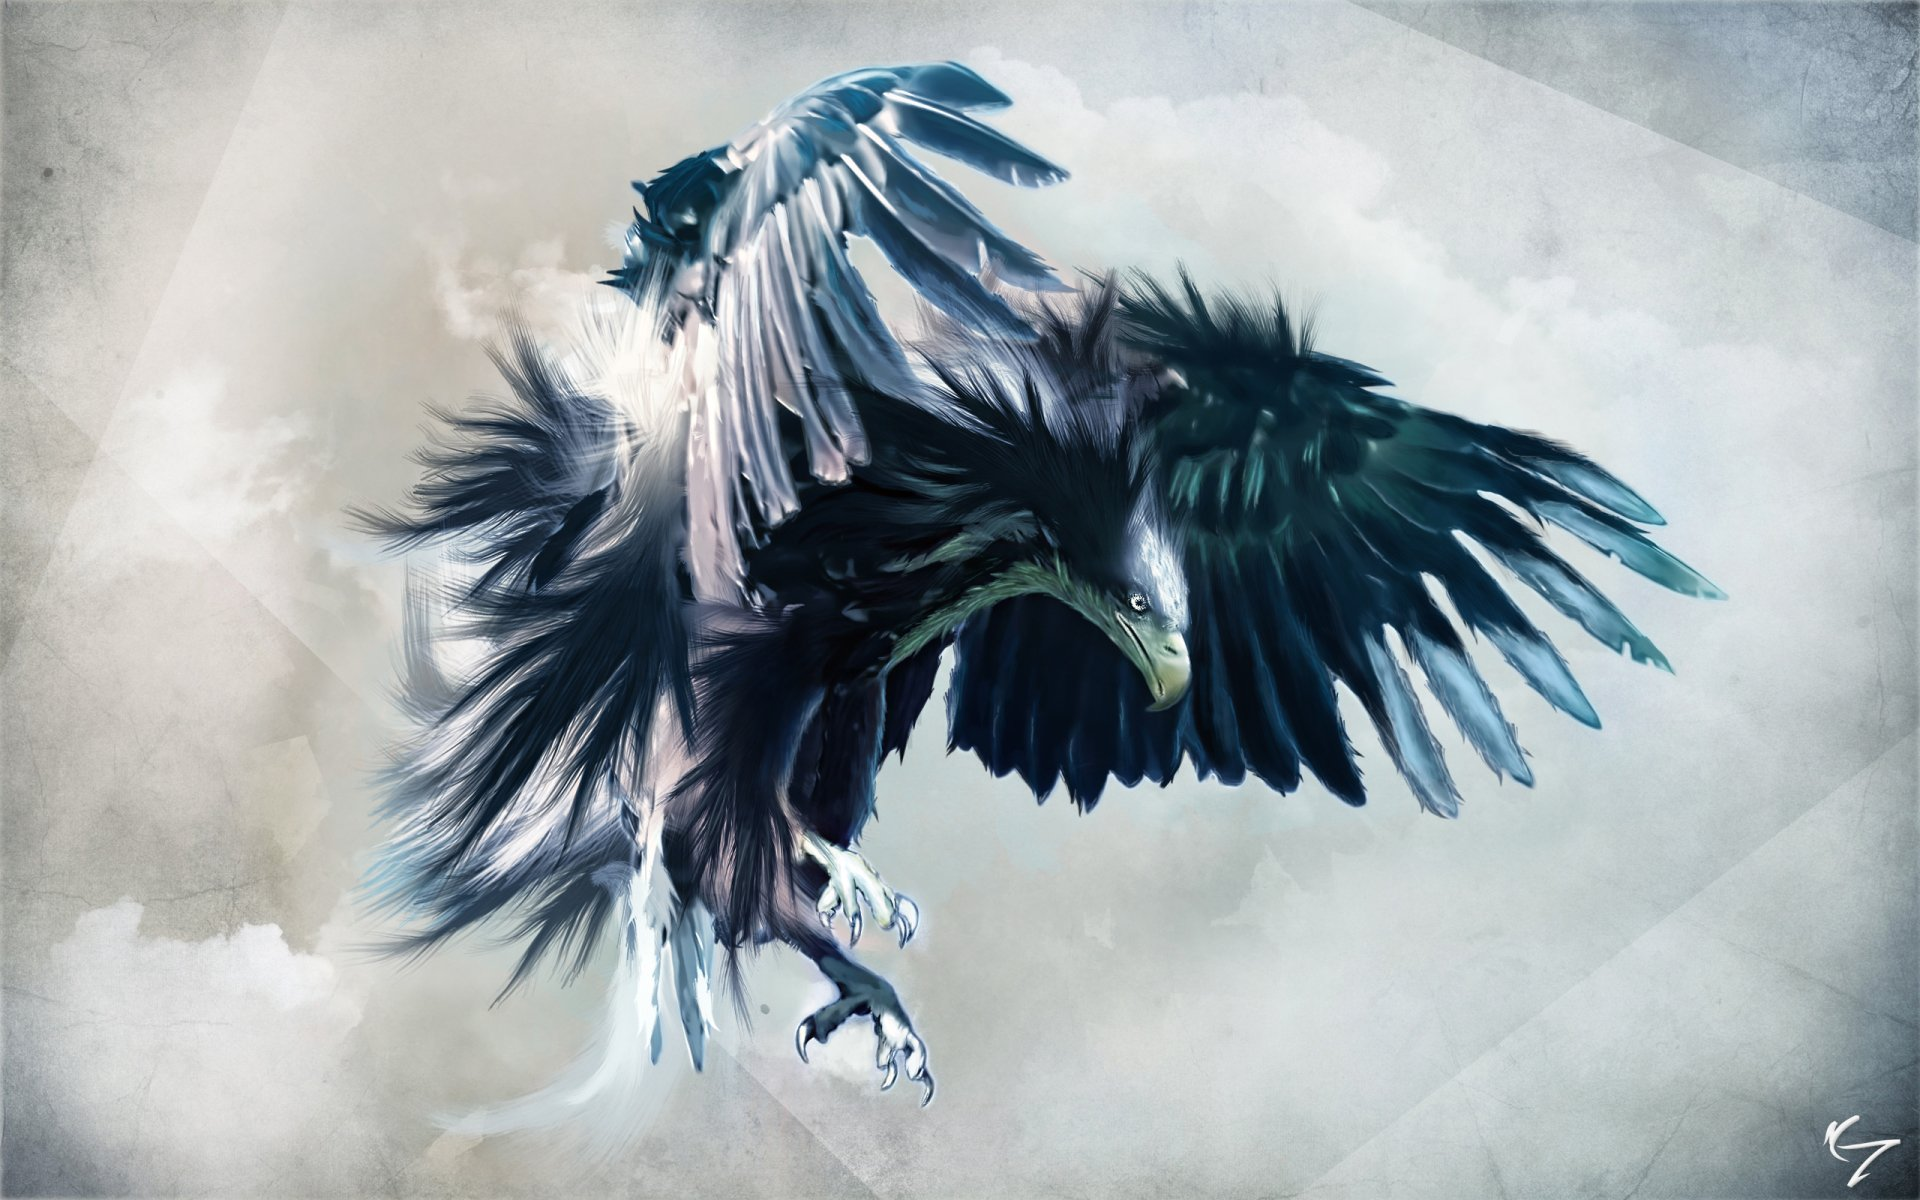 Animal - Eagle  Bird Wallpaper